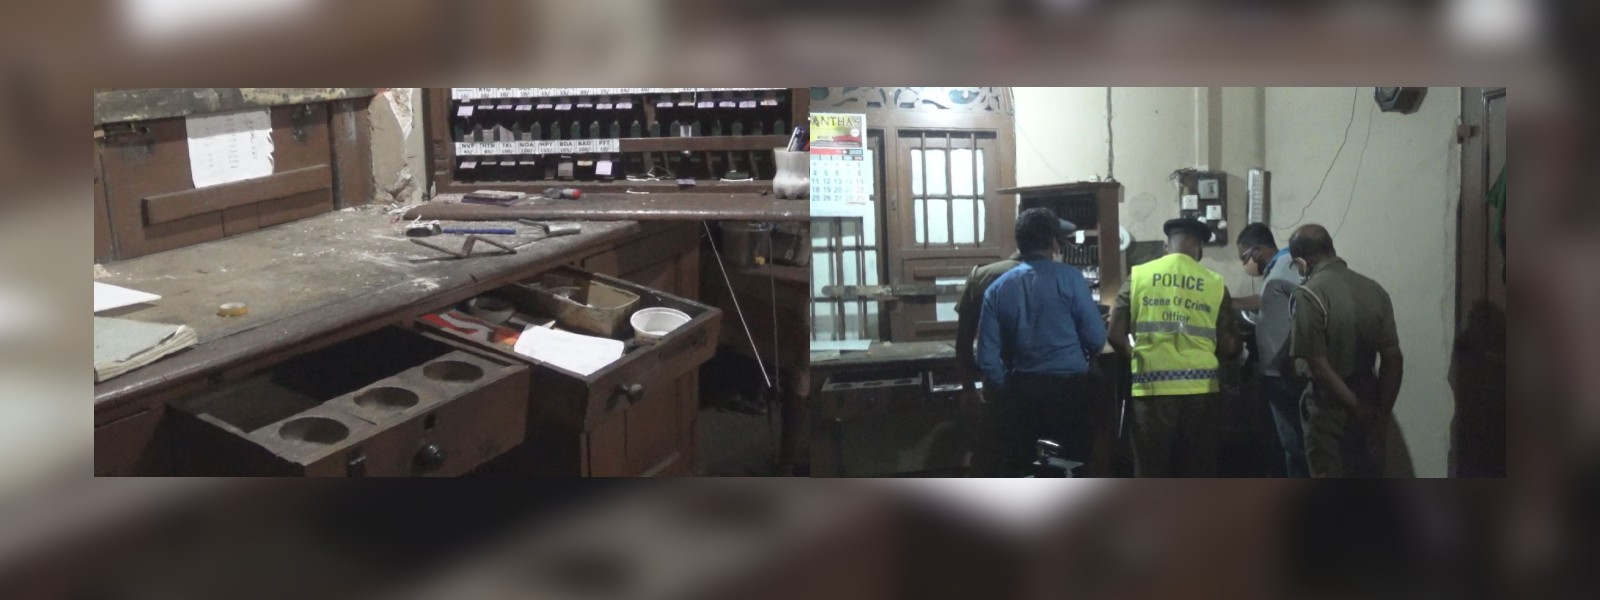 State Property Damged during break-in